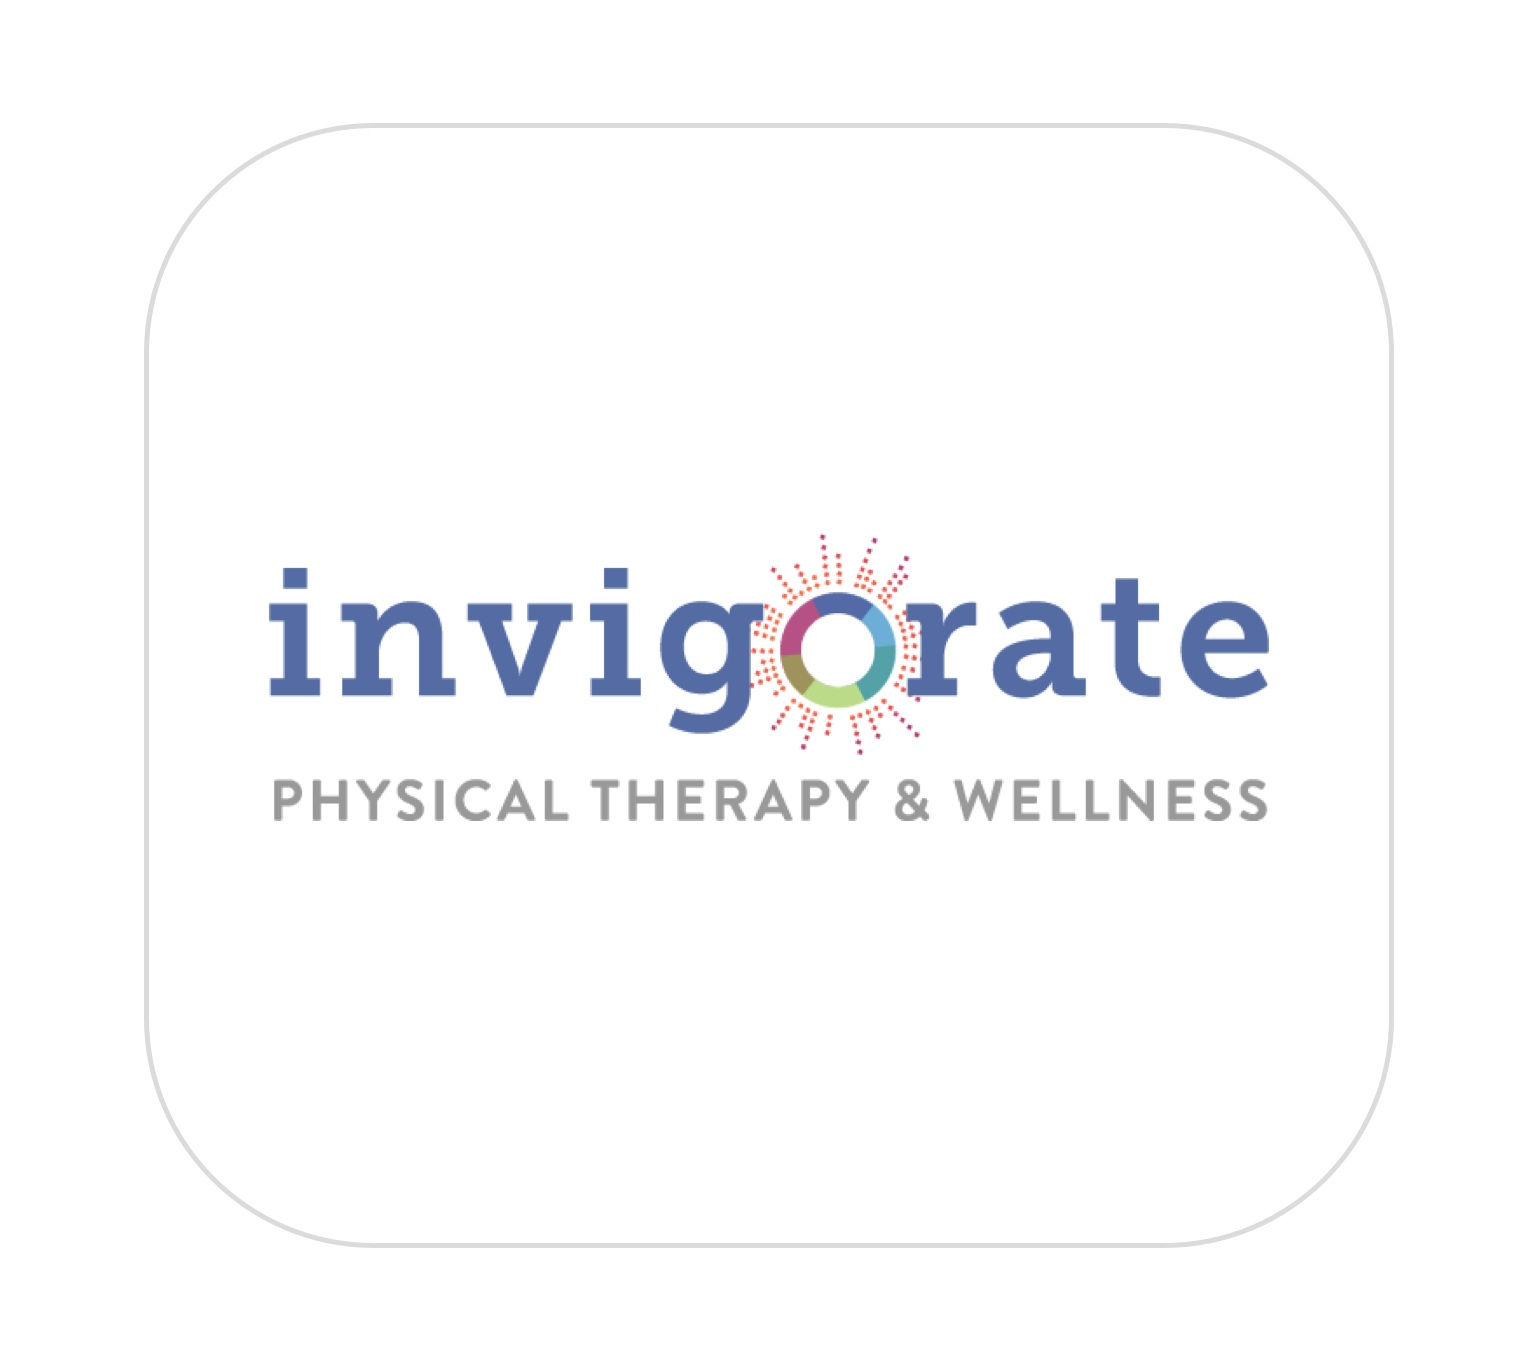 INVIGORATE - research study on health, wellness, & the Parkinsons' Disease community.